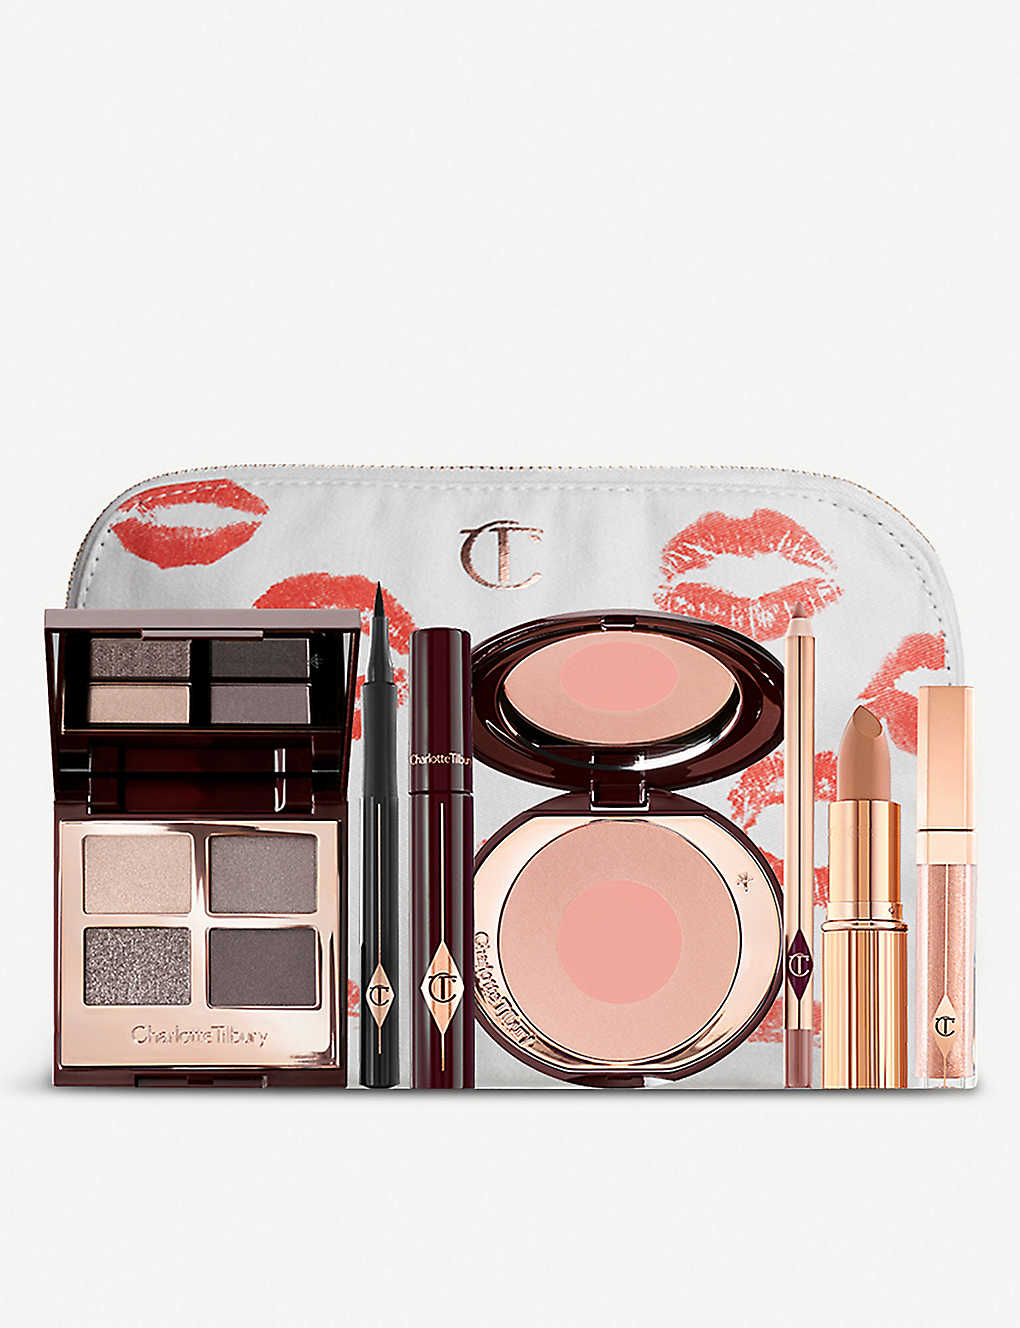 CHARLOTTE TILBURY: The Rock Chick Look set